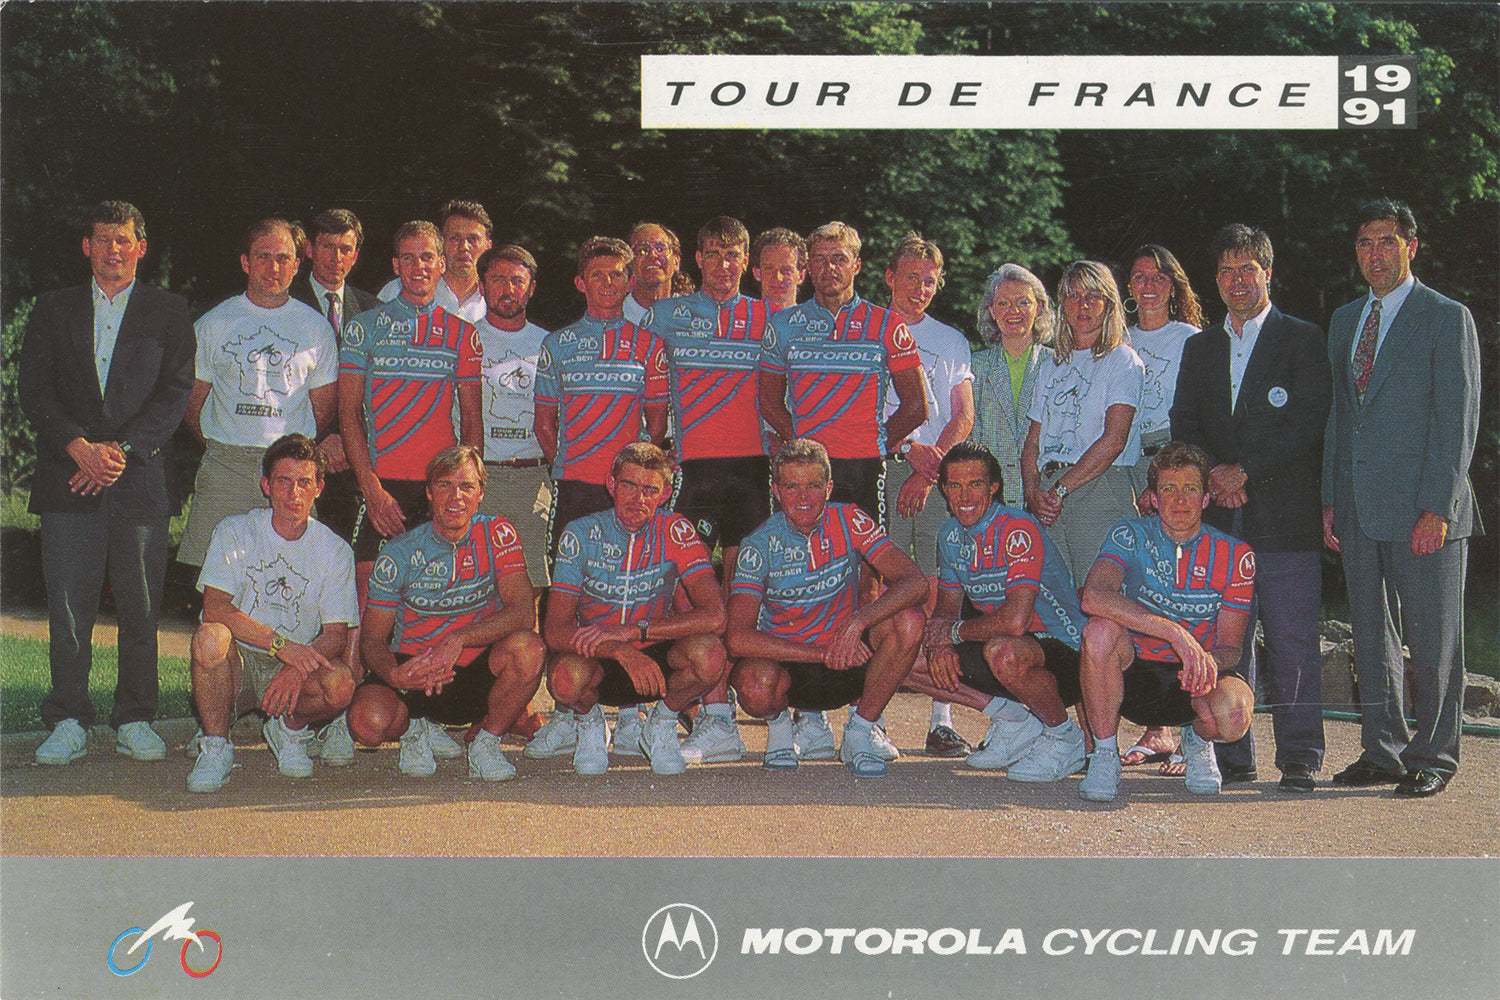 A Motorola cycling team postcard specifically made for the 1991 Tour de France including the team's bike sponsor Eddy Merckx.